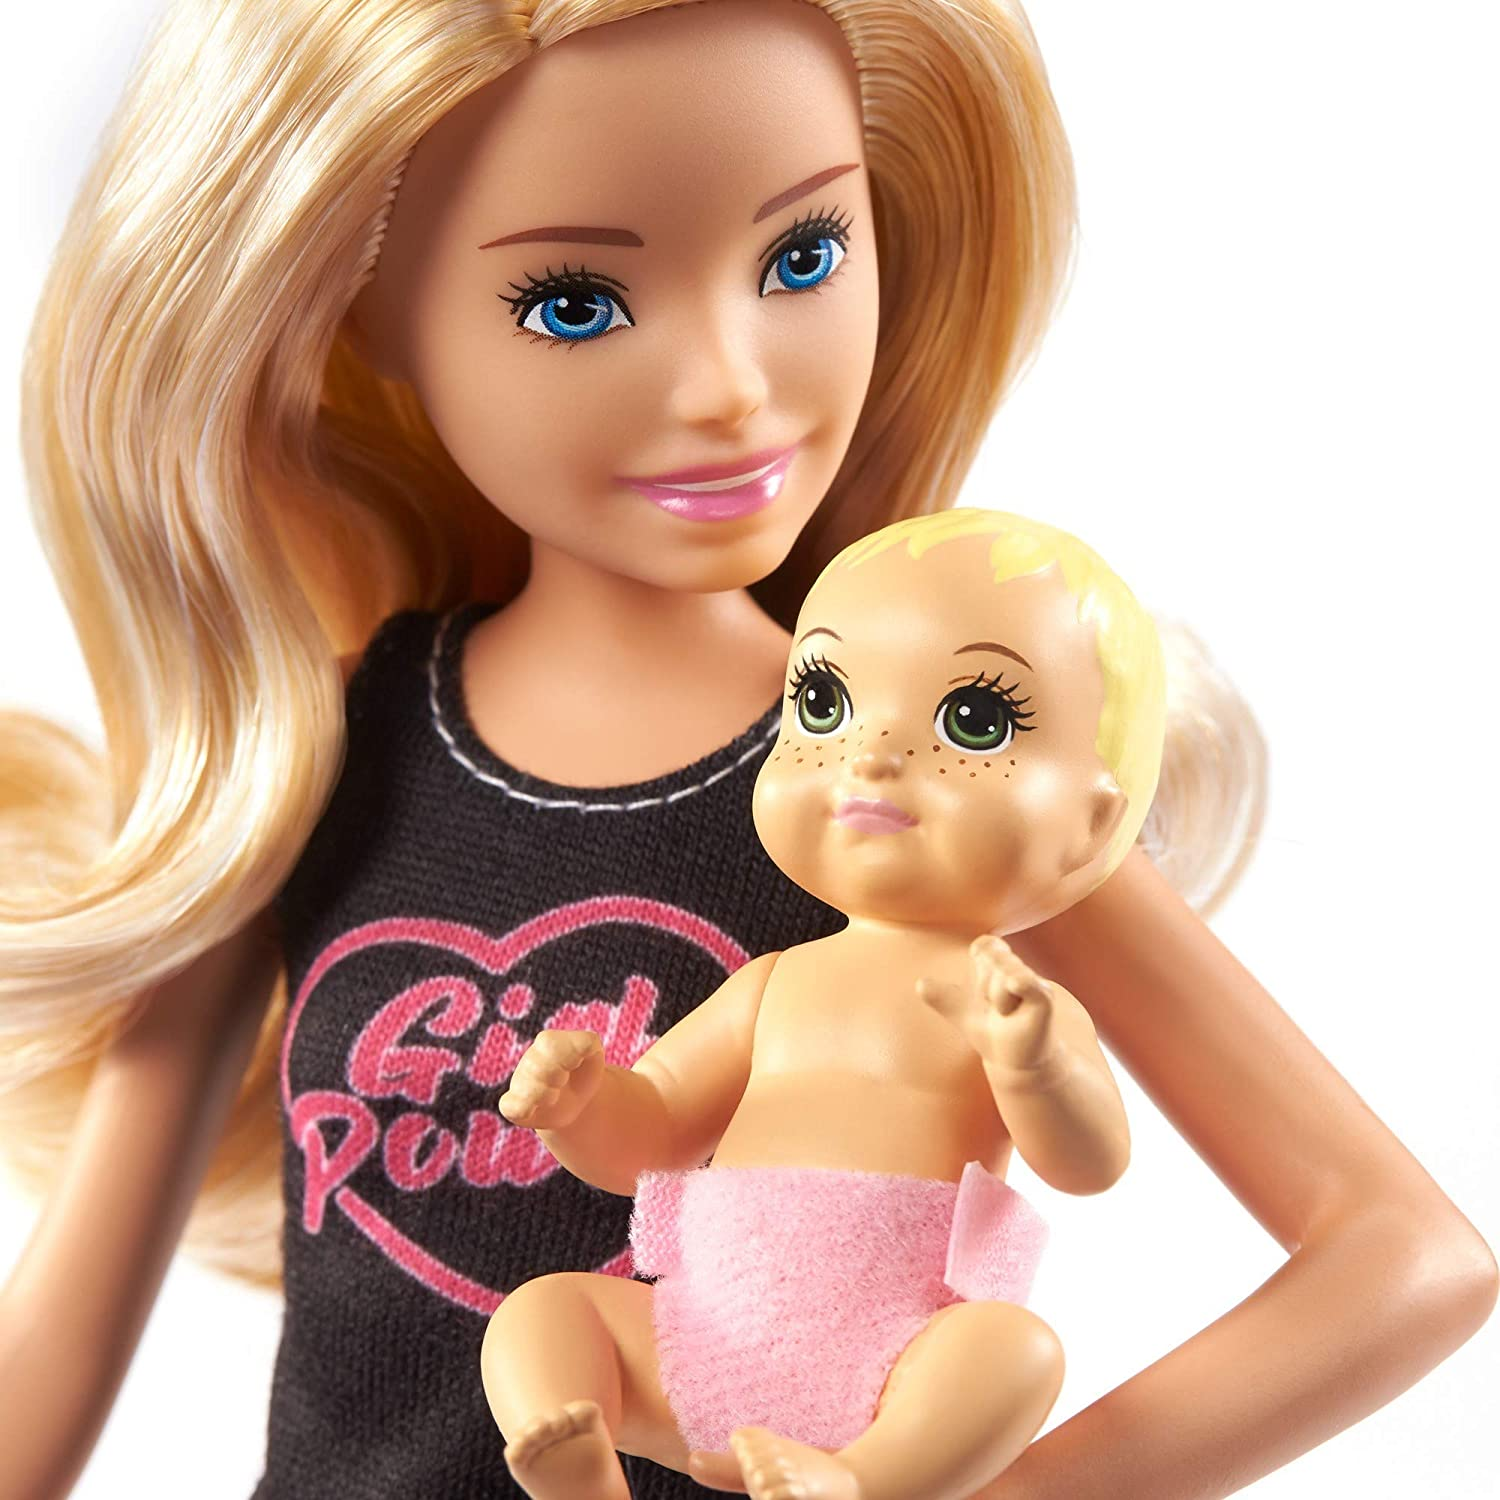 Doll /& Accessories Set with 9-in 22.86-cm Blonde Doll Barbie Skipper Babysitters Inc Baby Doll /& 4 Storytelling Pieces for 3 to 7 Year Olds